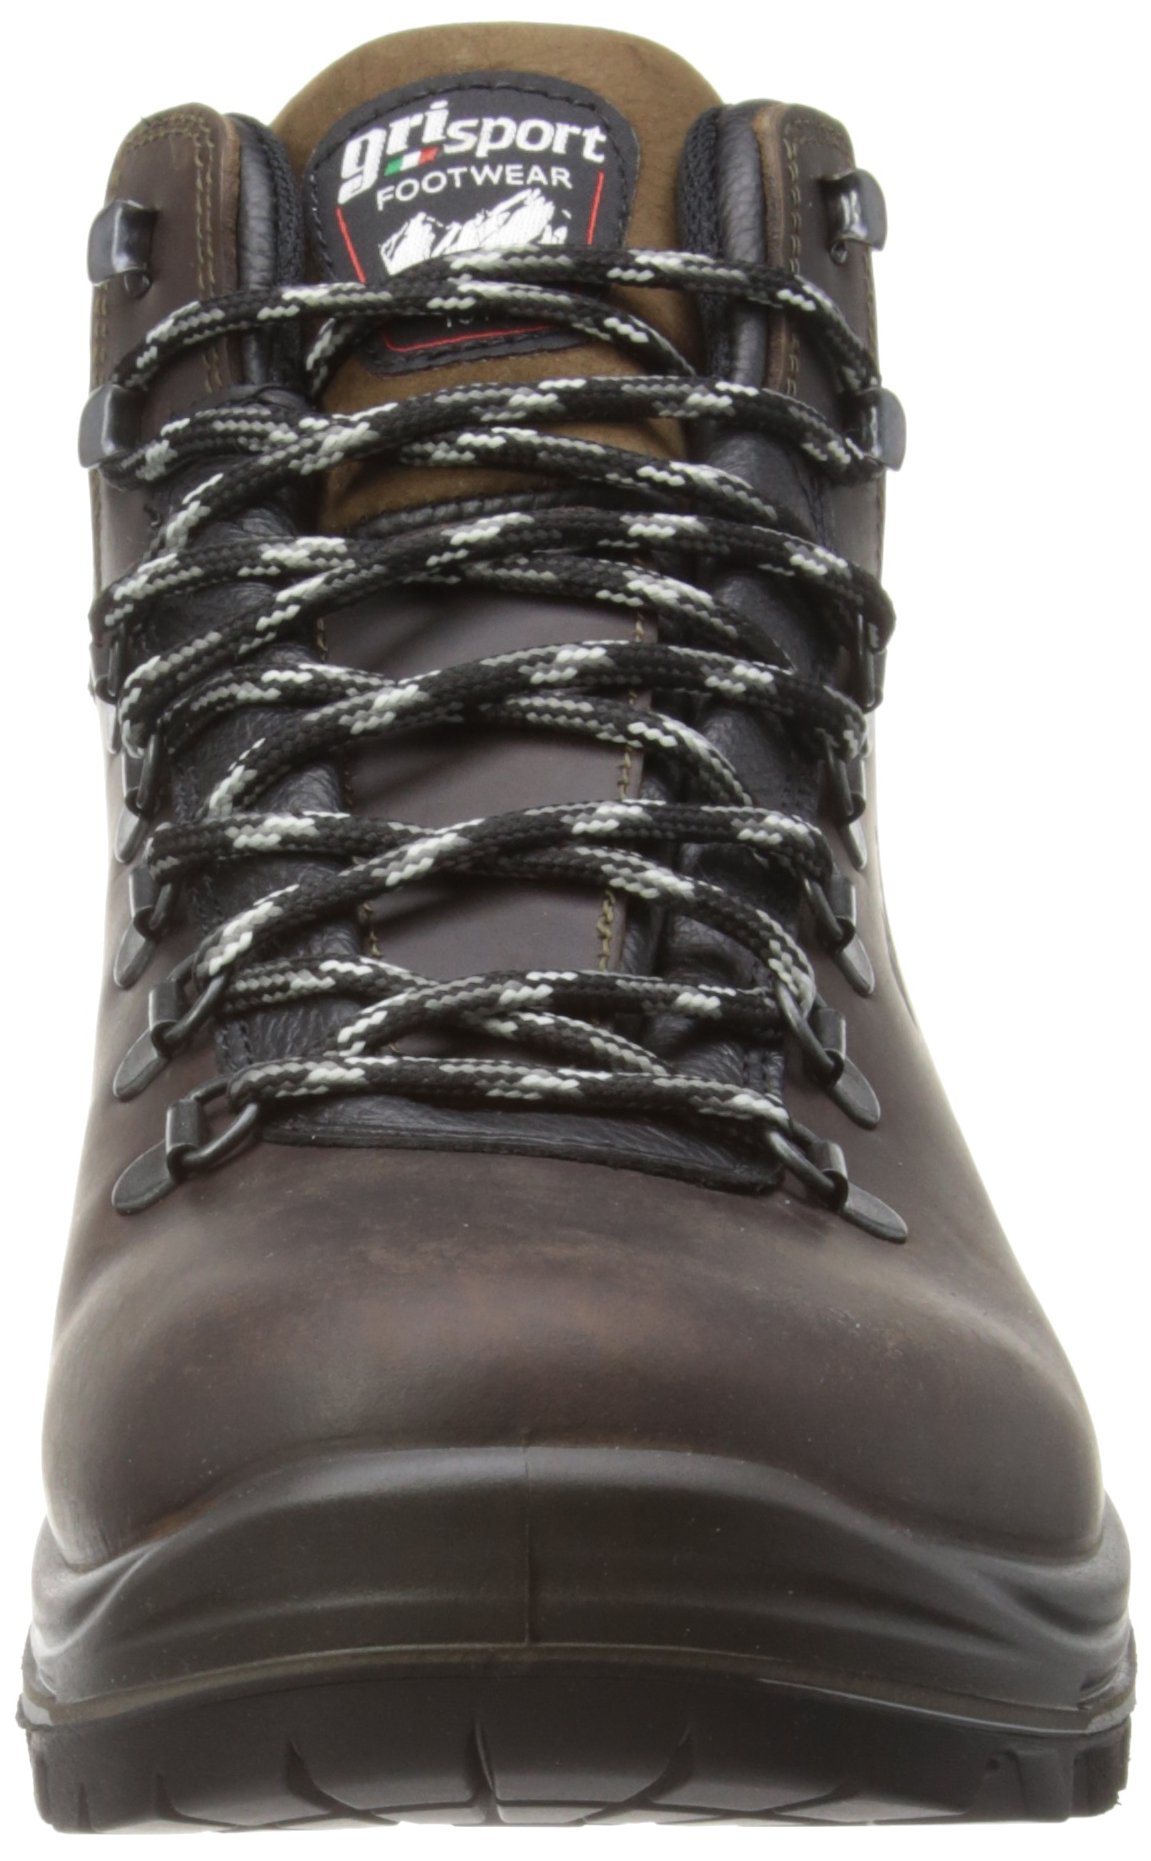 Grisport Unisex-Adult Fuse Trekking and Hiking Boots 4